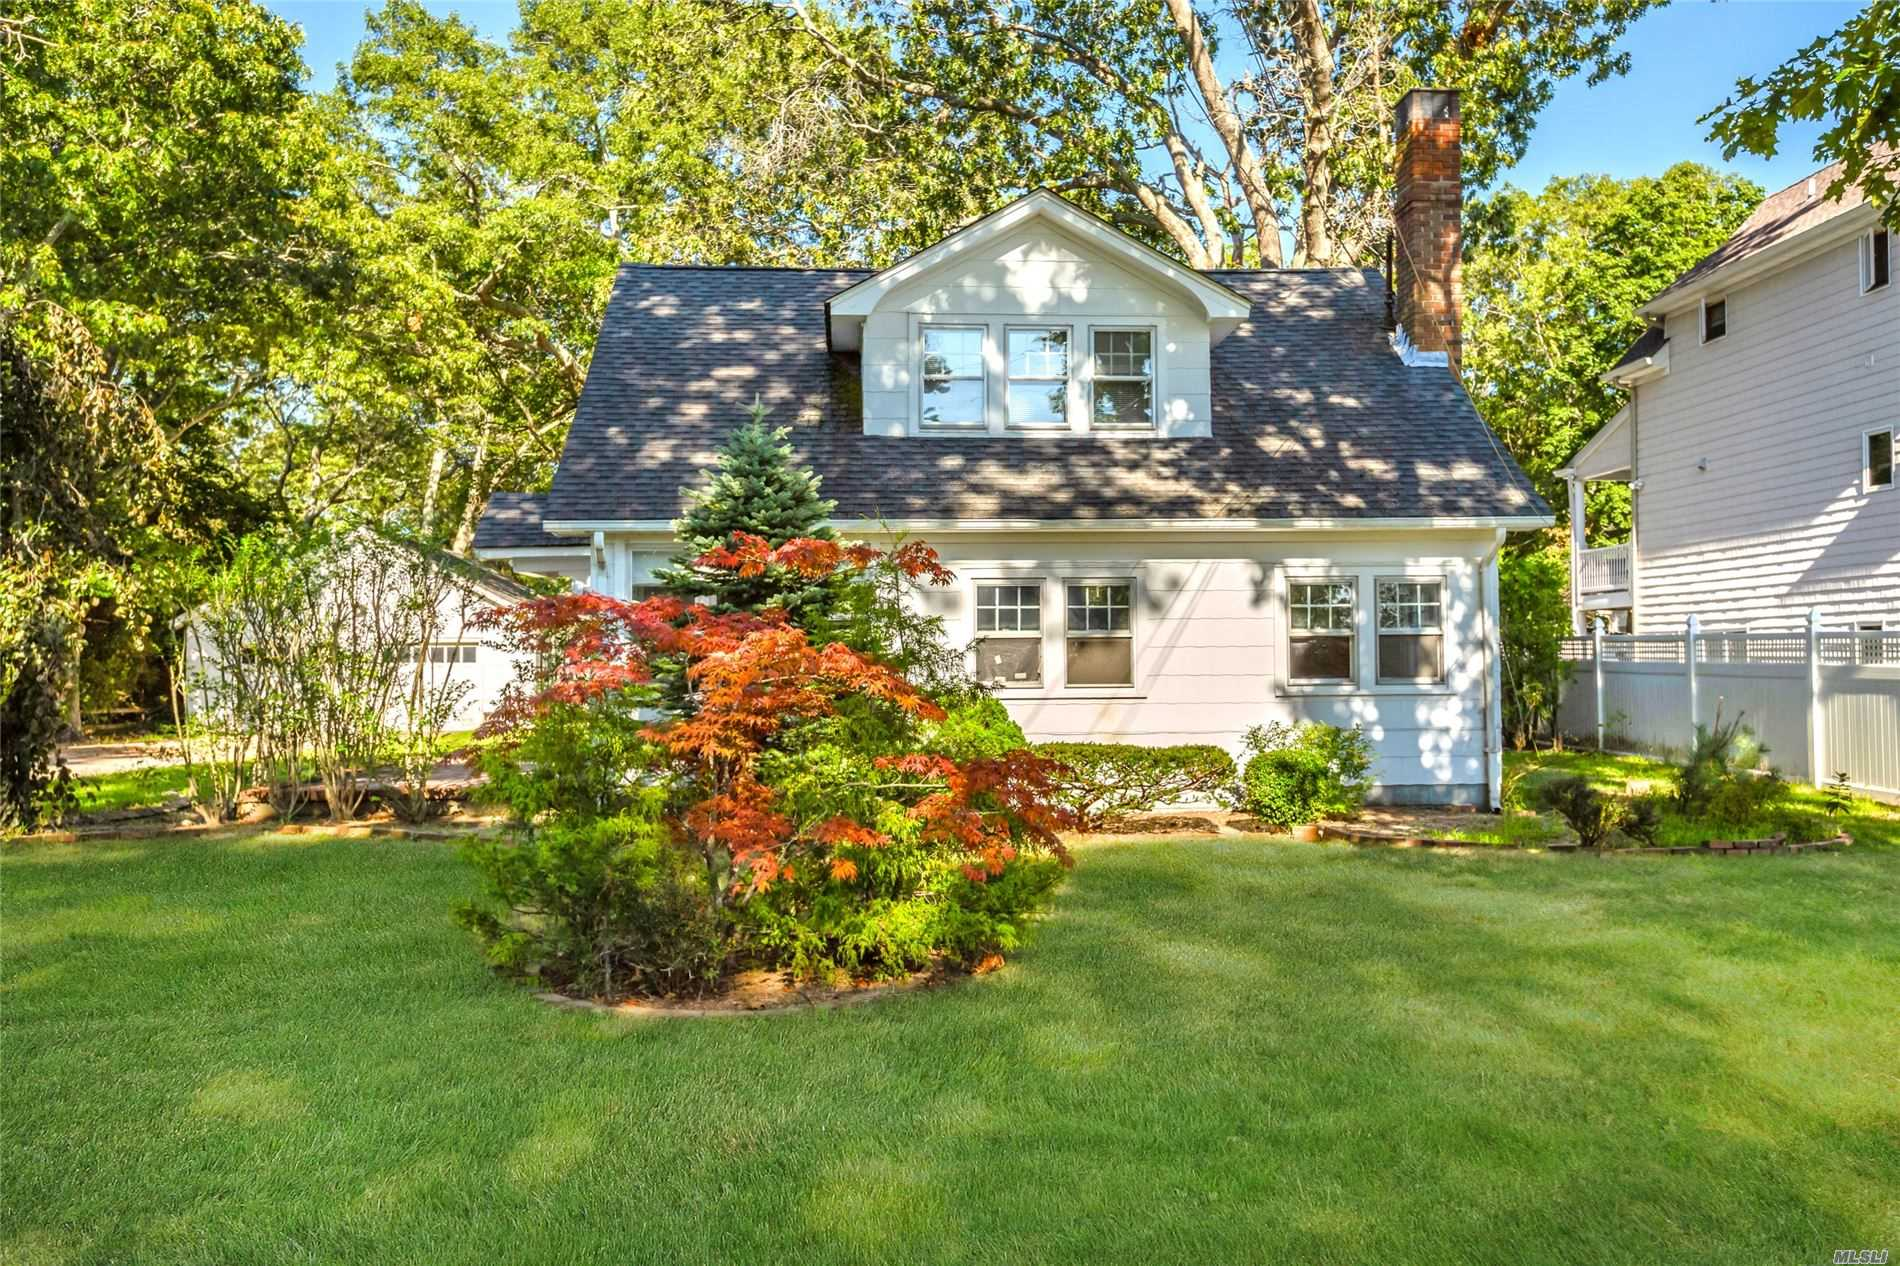 Classic Home In Beach Community. Here Is Your Opportunity To Make A House Your Own. Marina And Restaurant Down The Street. Close Proximity To Water And Community Beach. Convenient To All The North Fork Has To Offer. House Is Being Sold As Is.